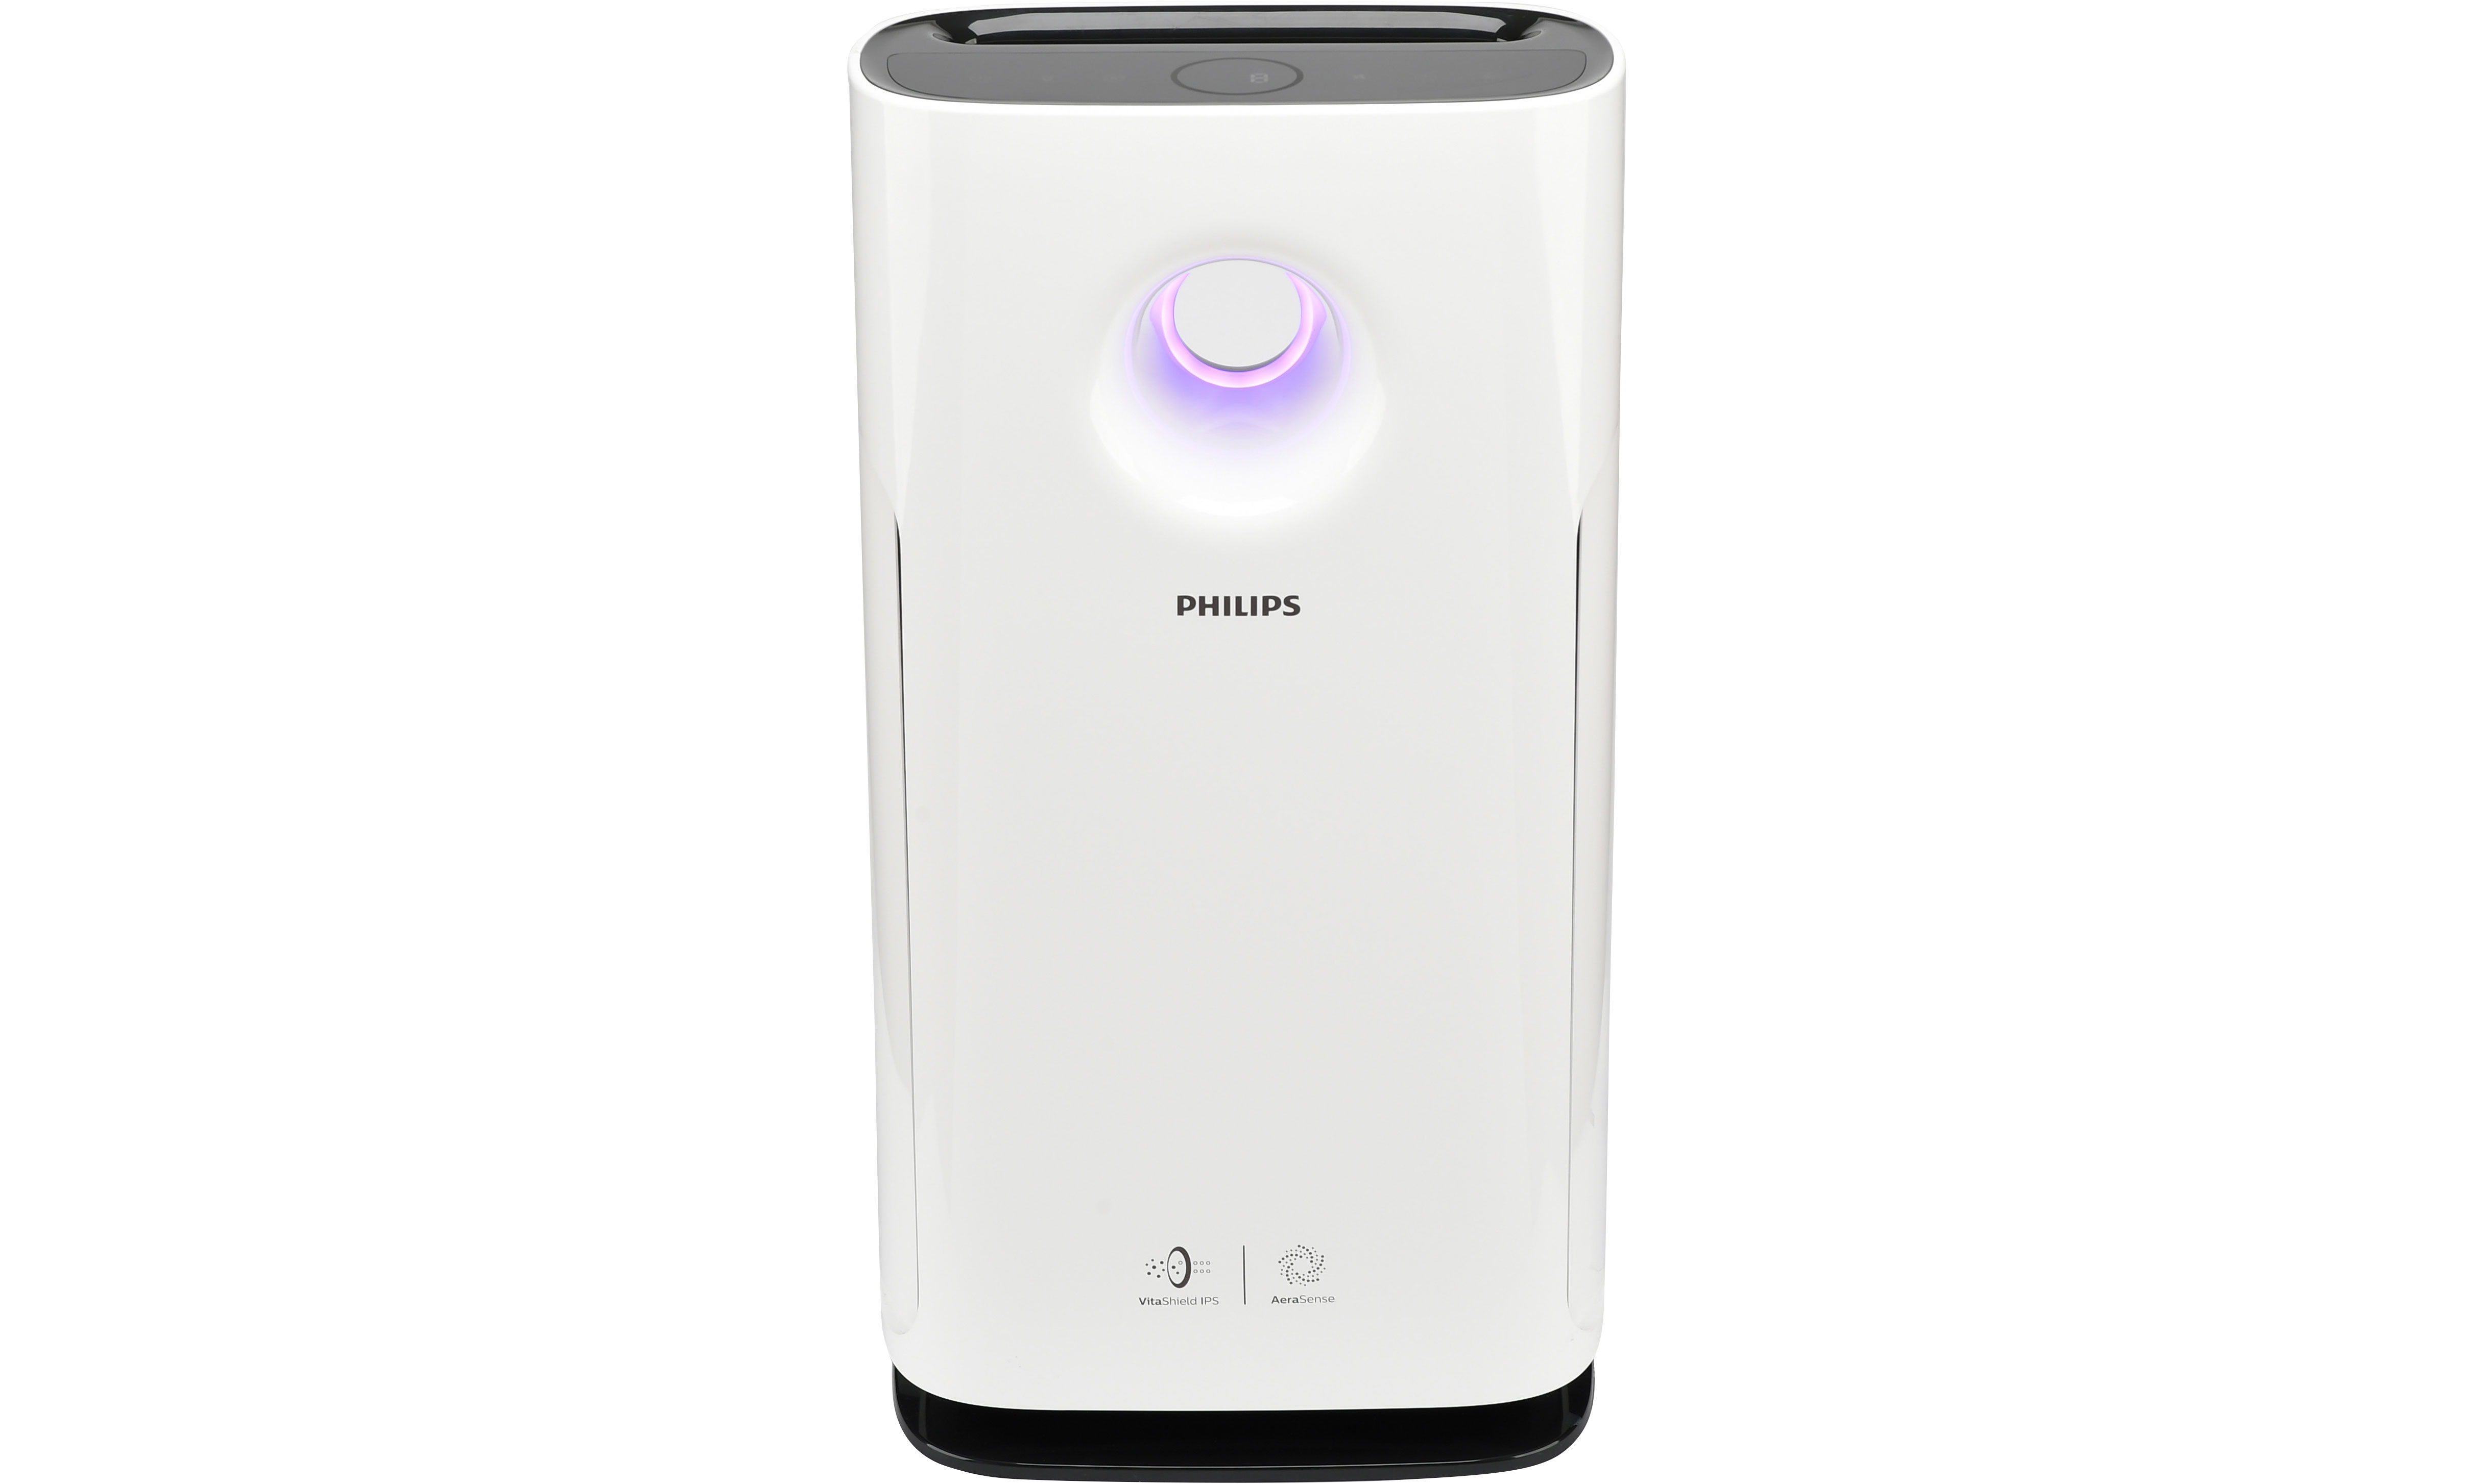 Philips air purifer